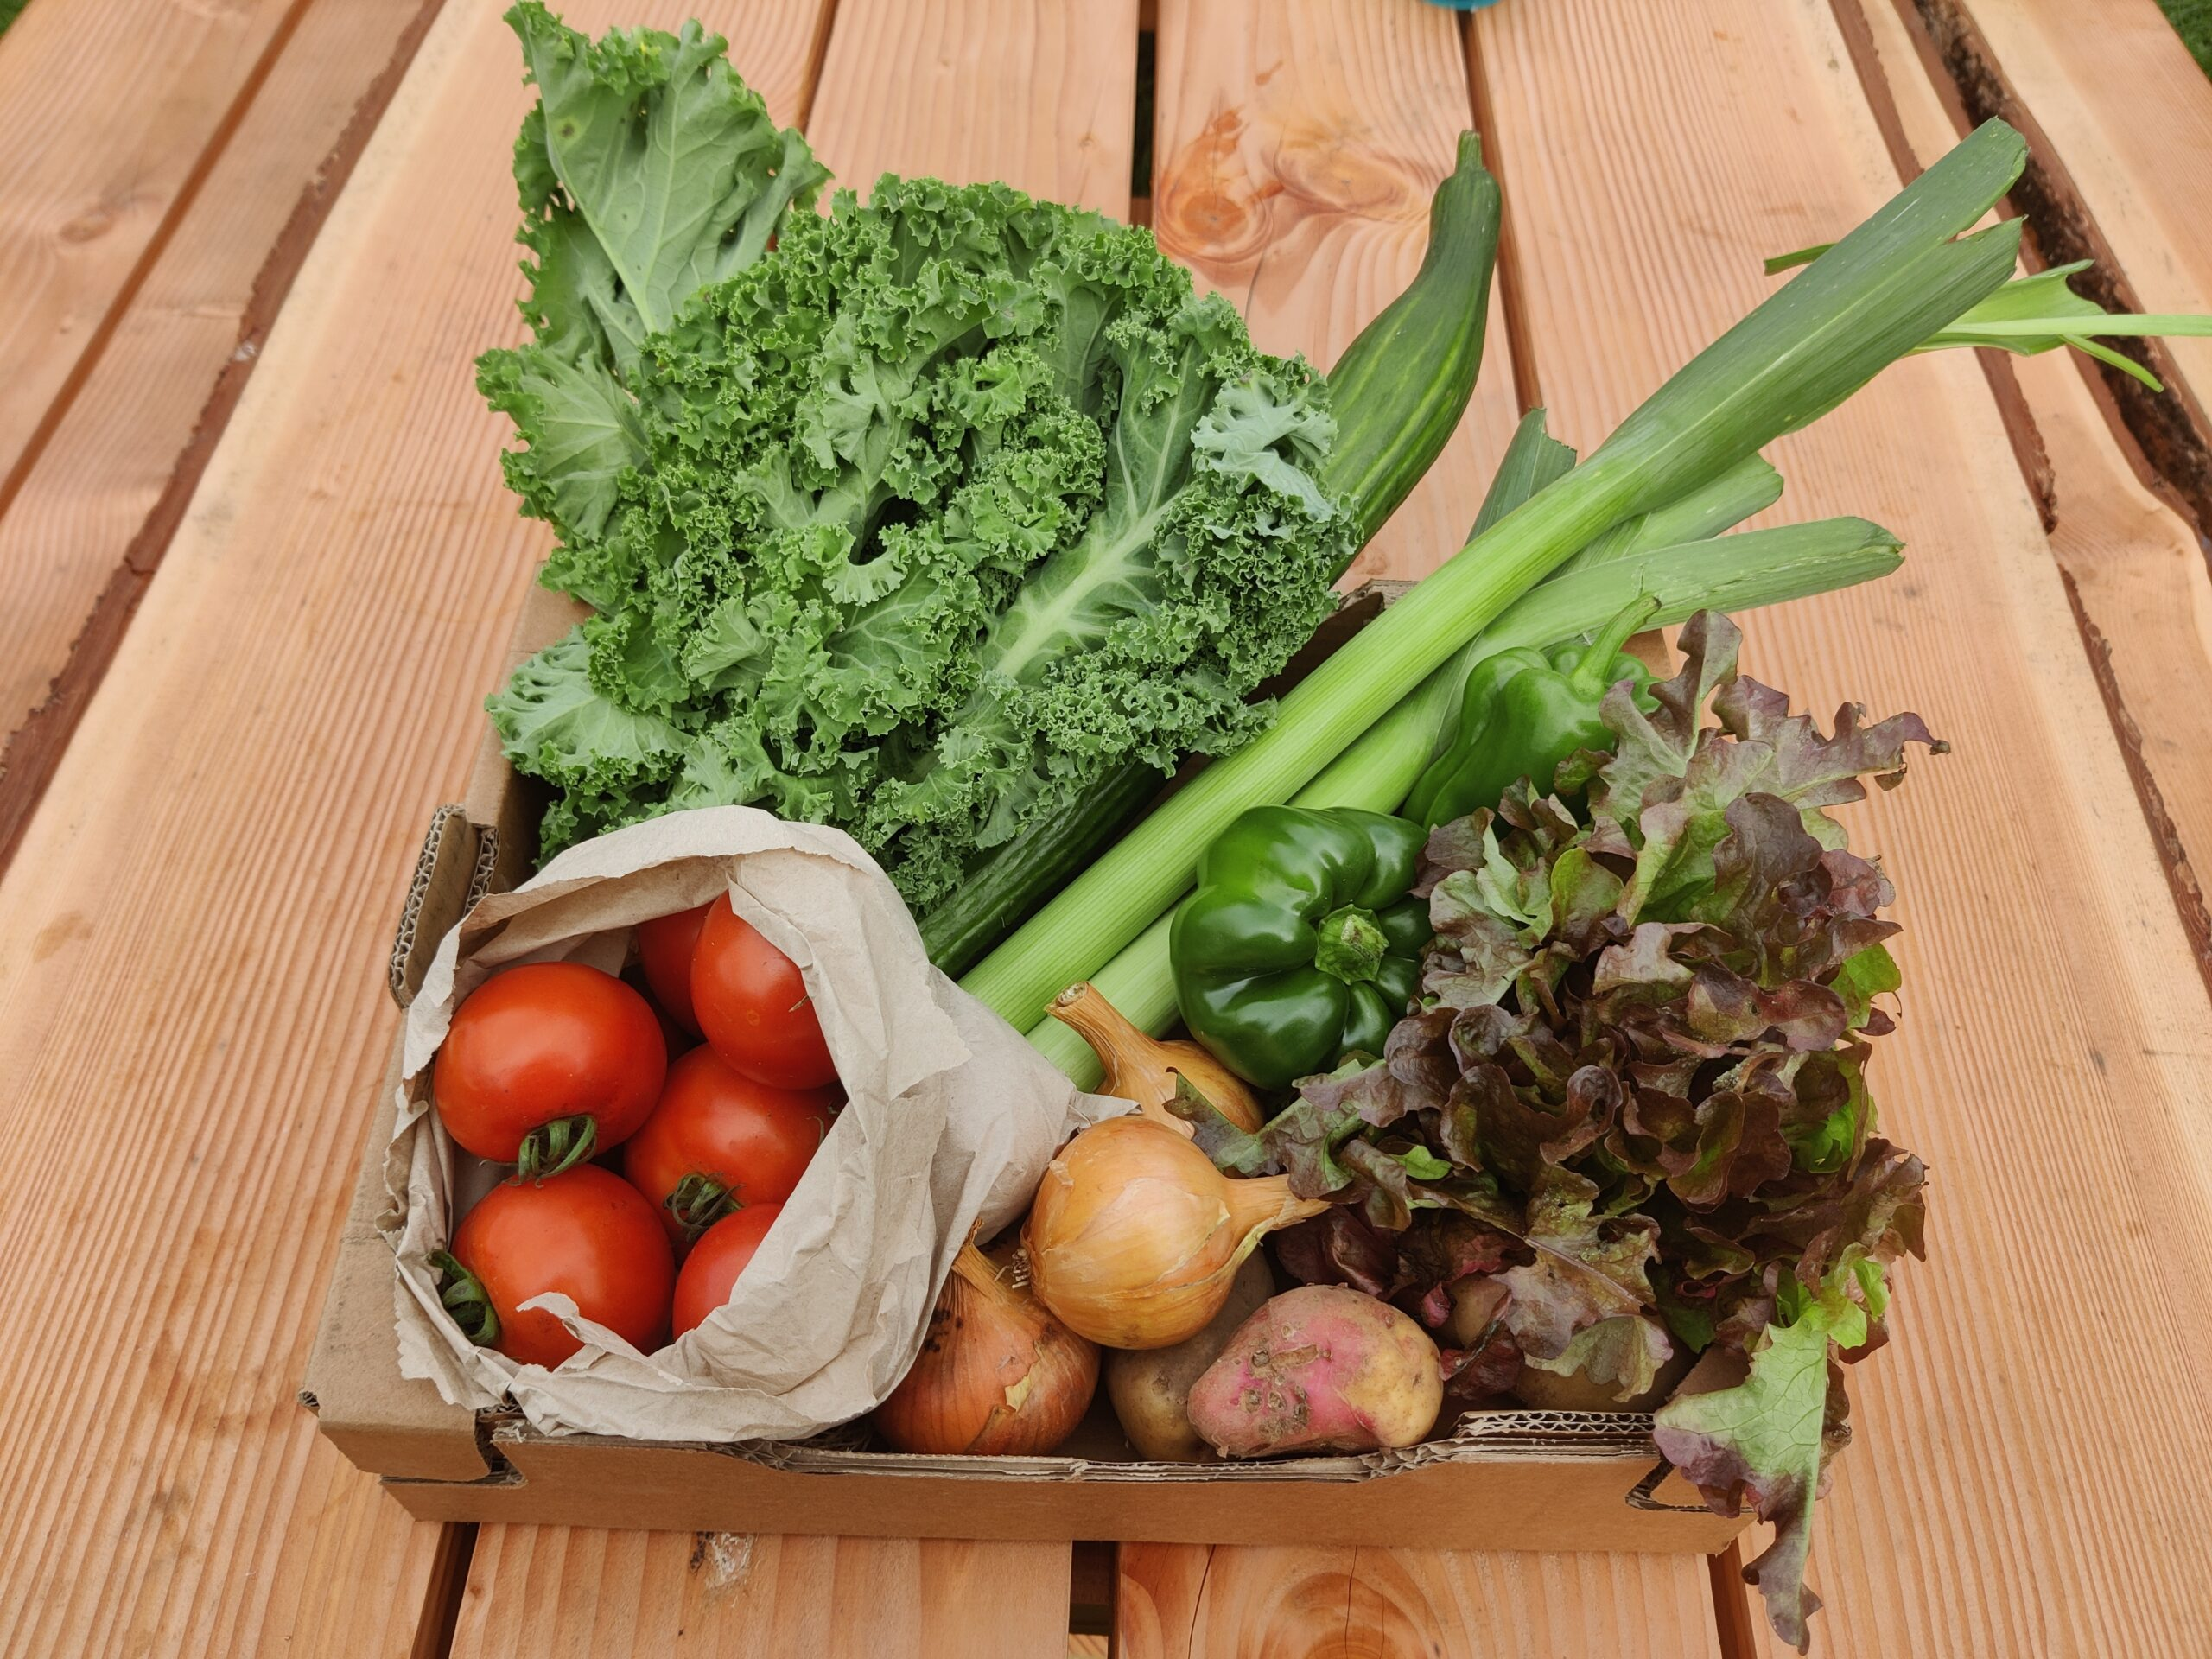 A veg box showing potatoes, onions, green peppers, leeks, cucumber, kale, tomatoes and lettuce